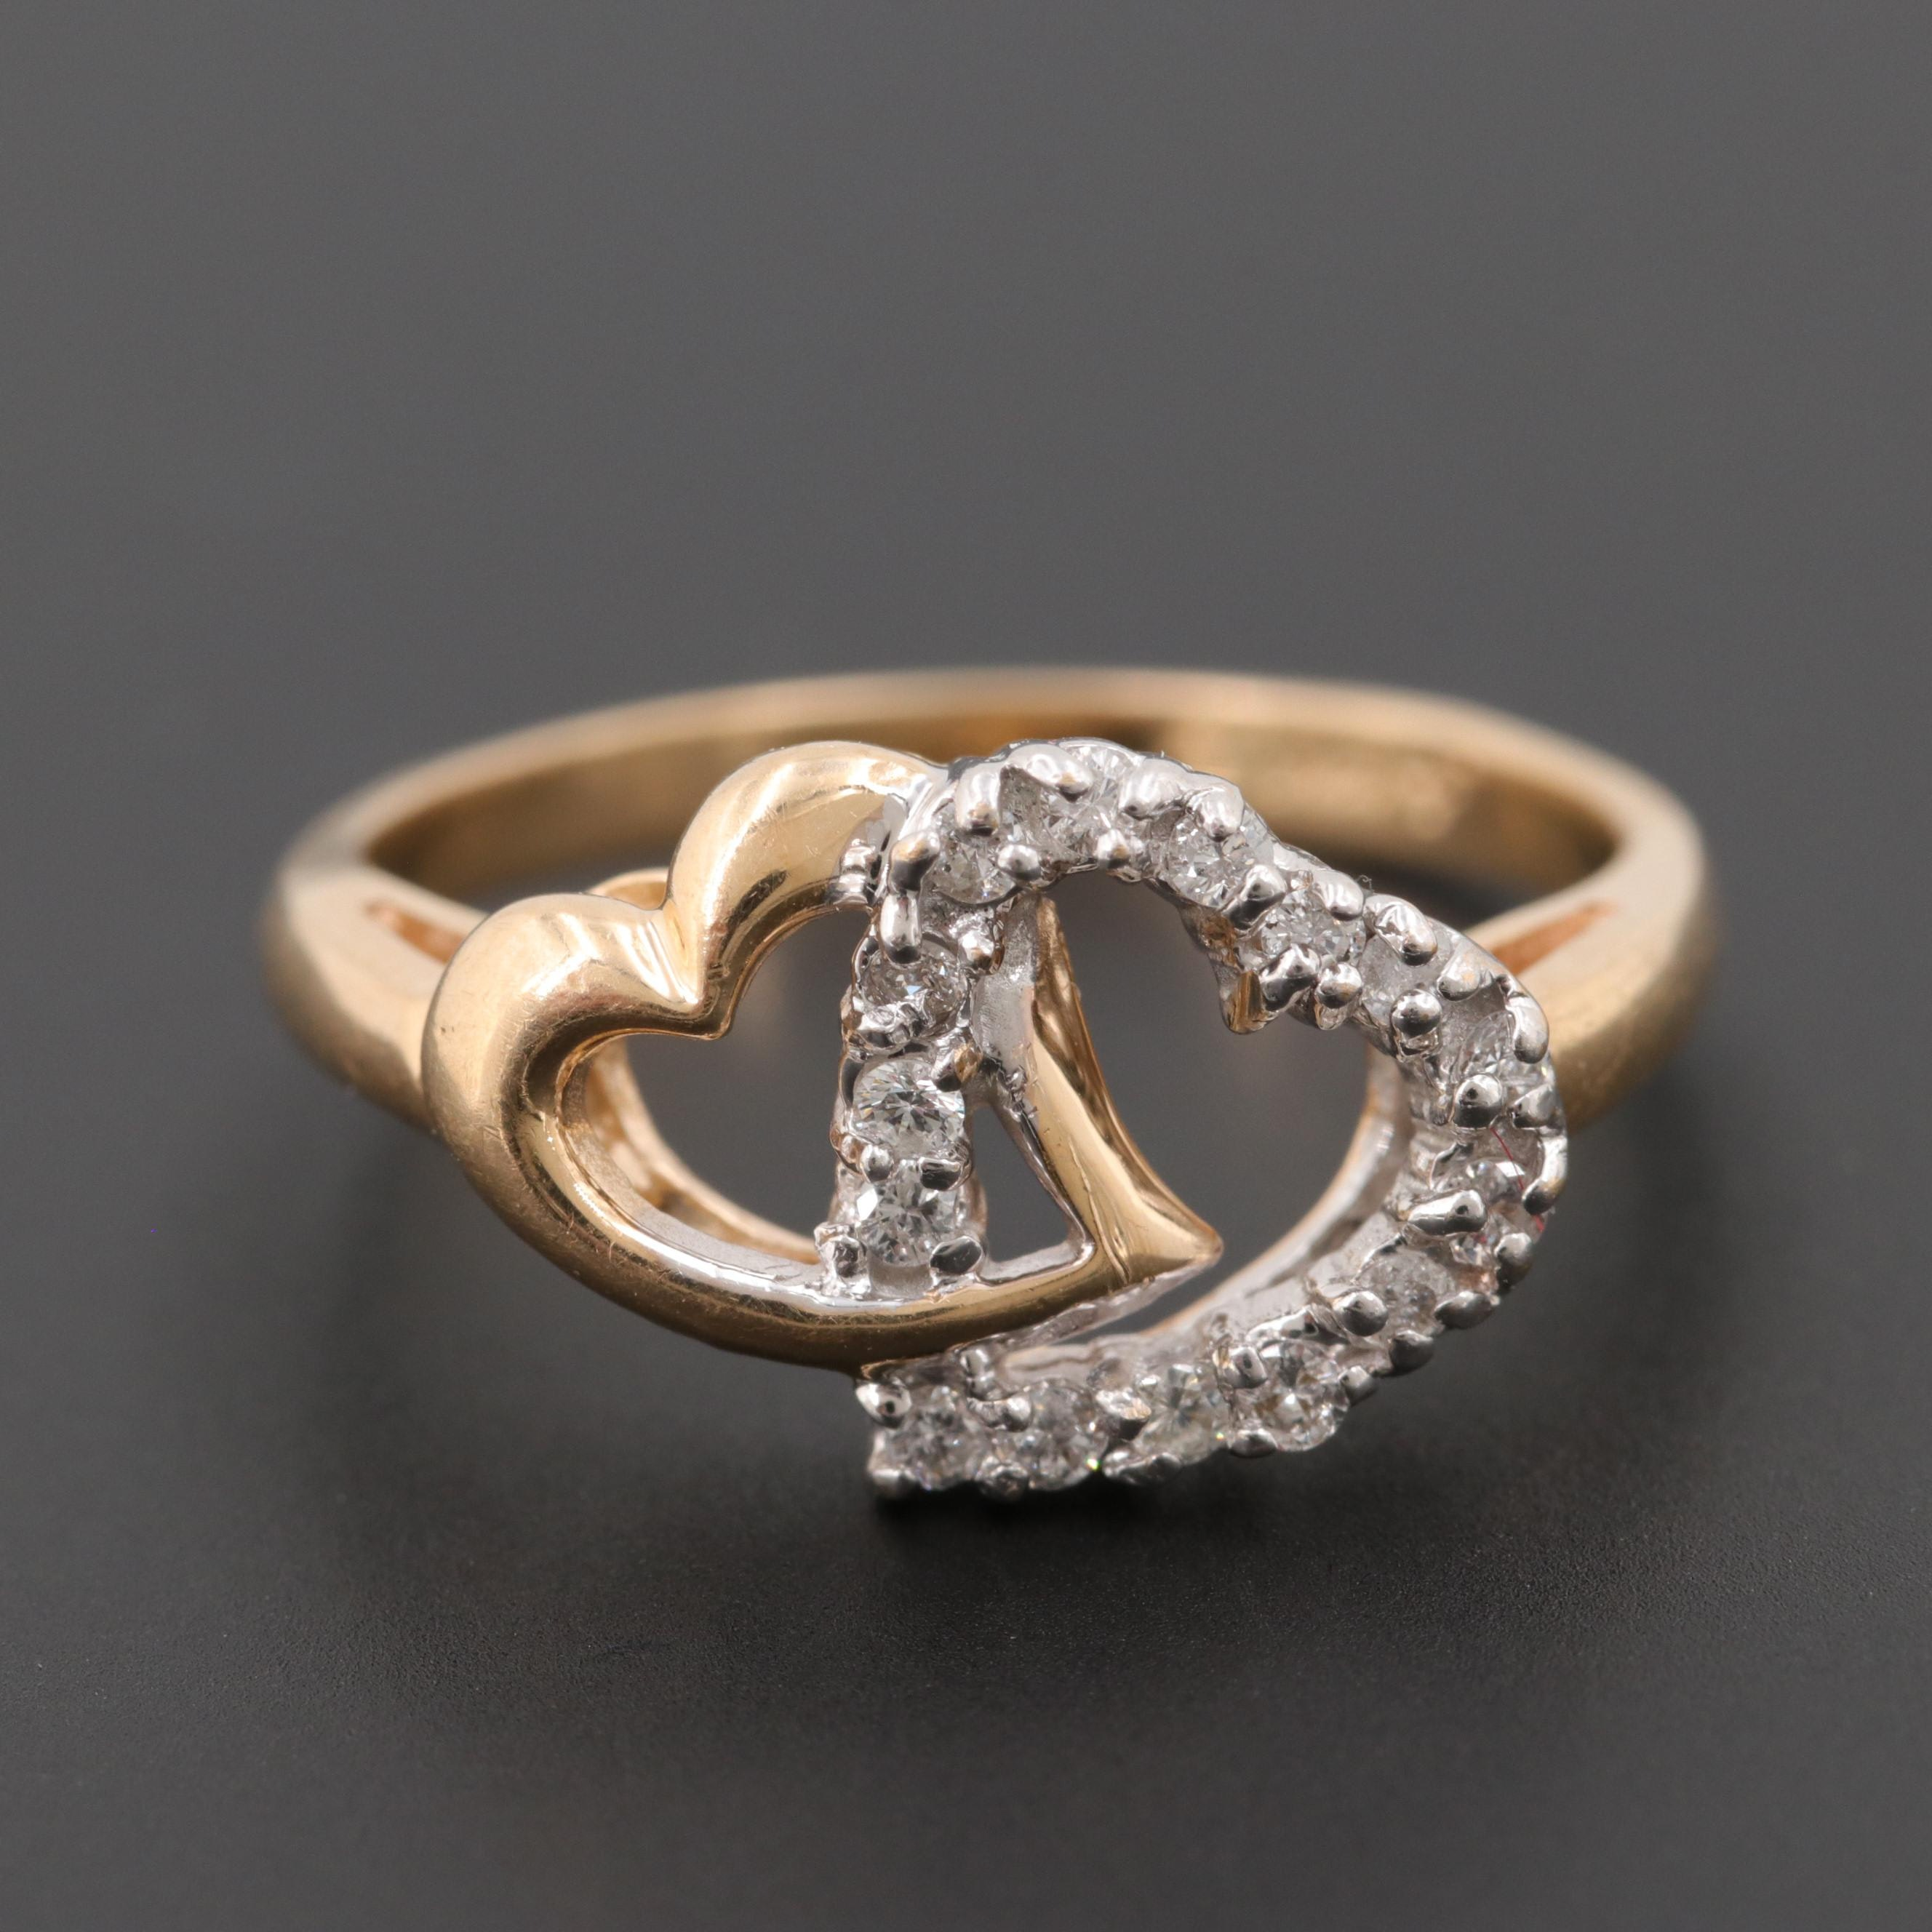 14K Yellow Gold Diamond Ring with a White Gold Top